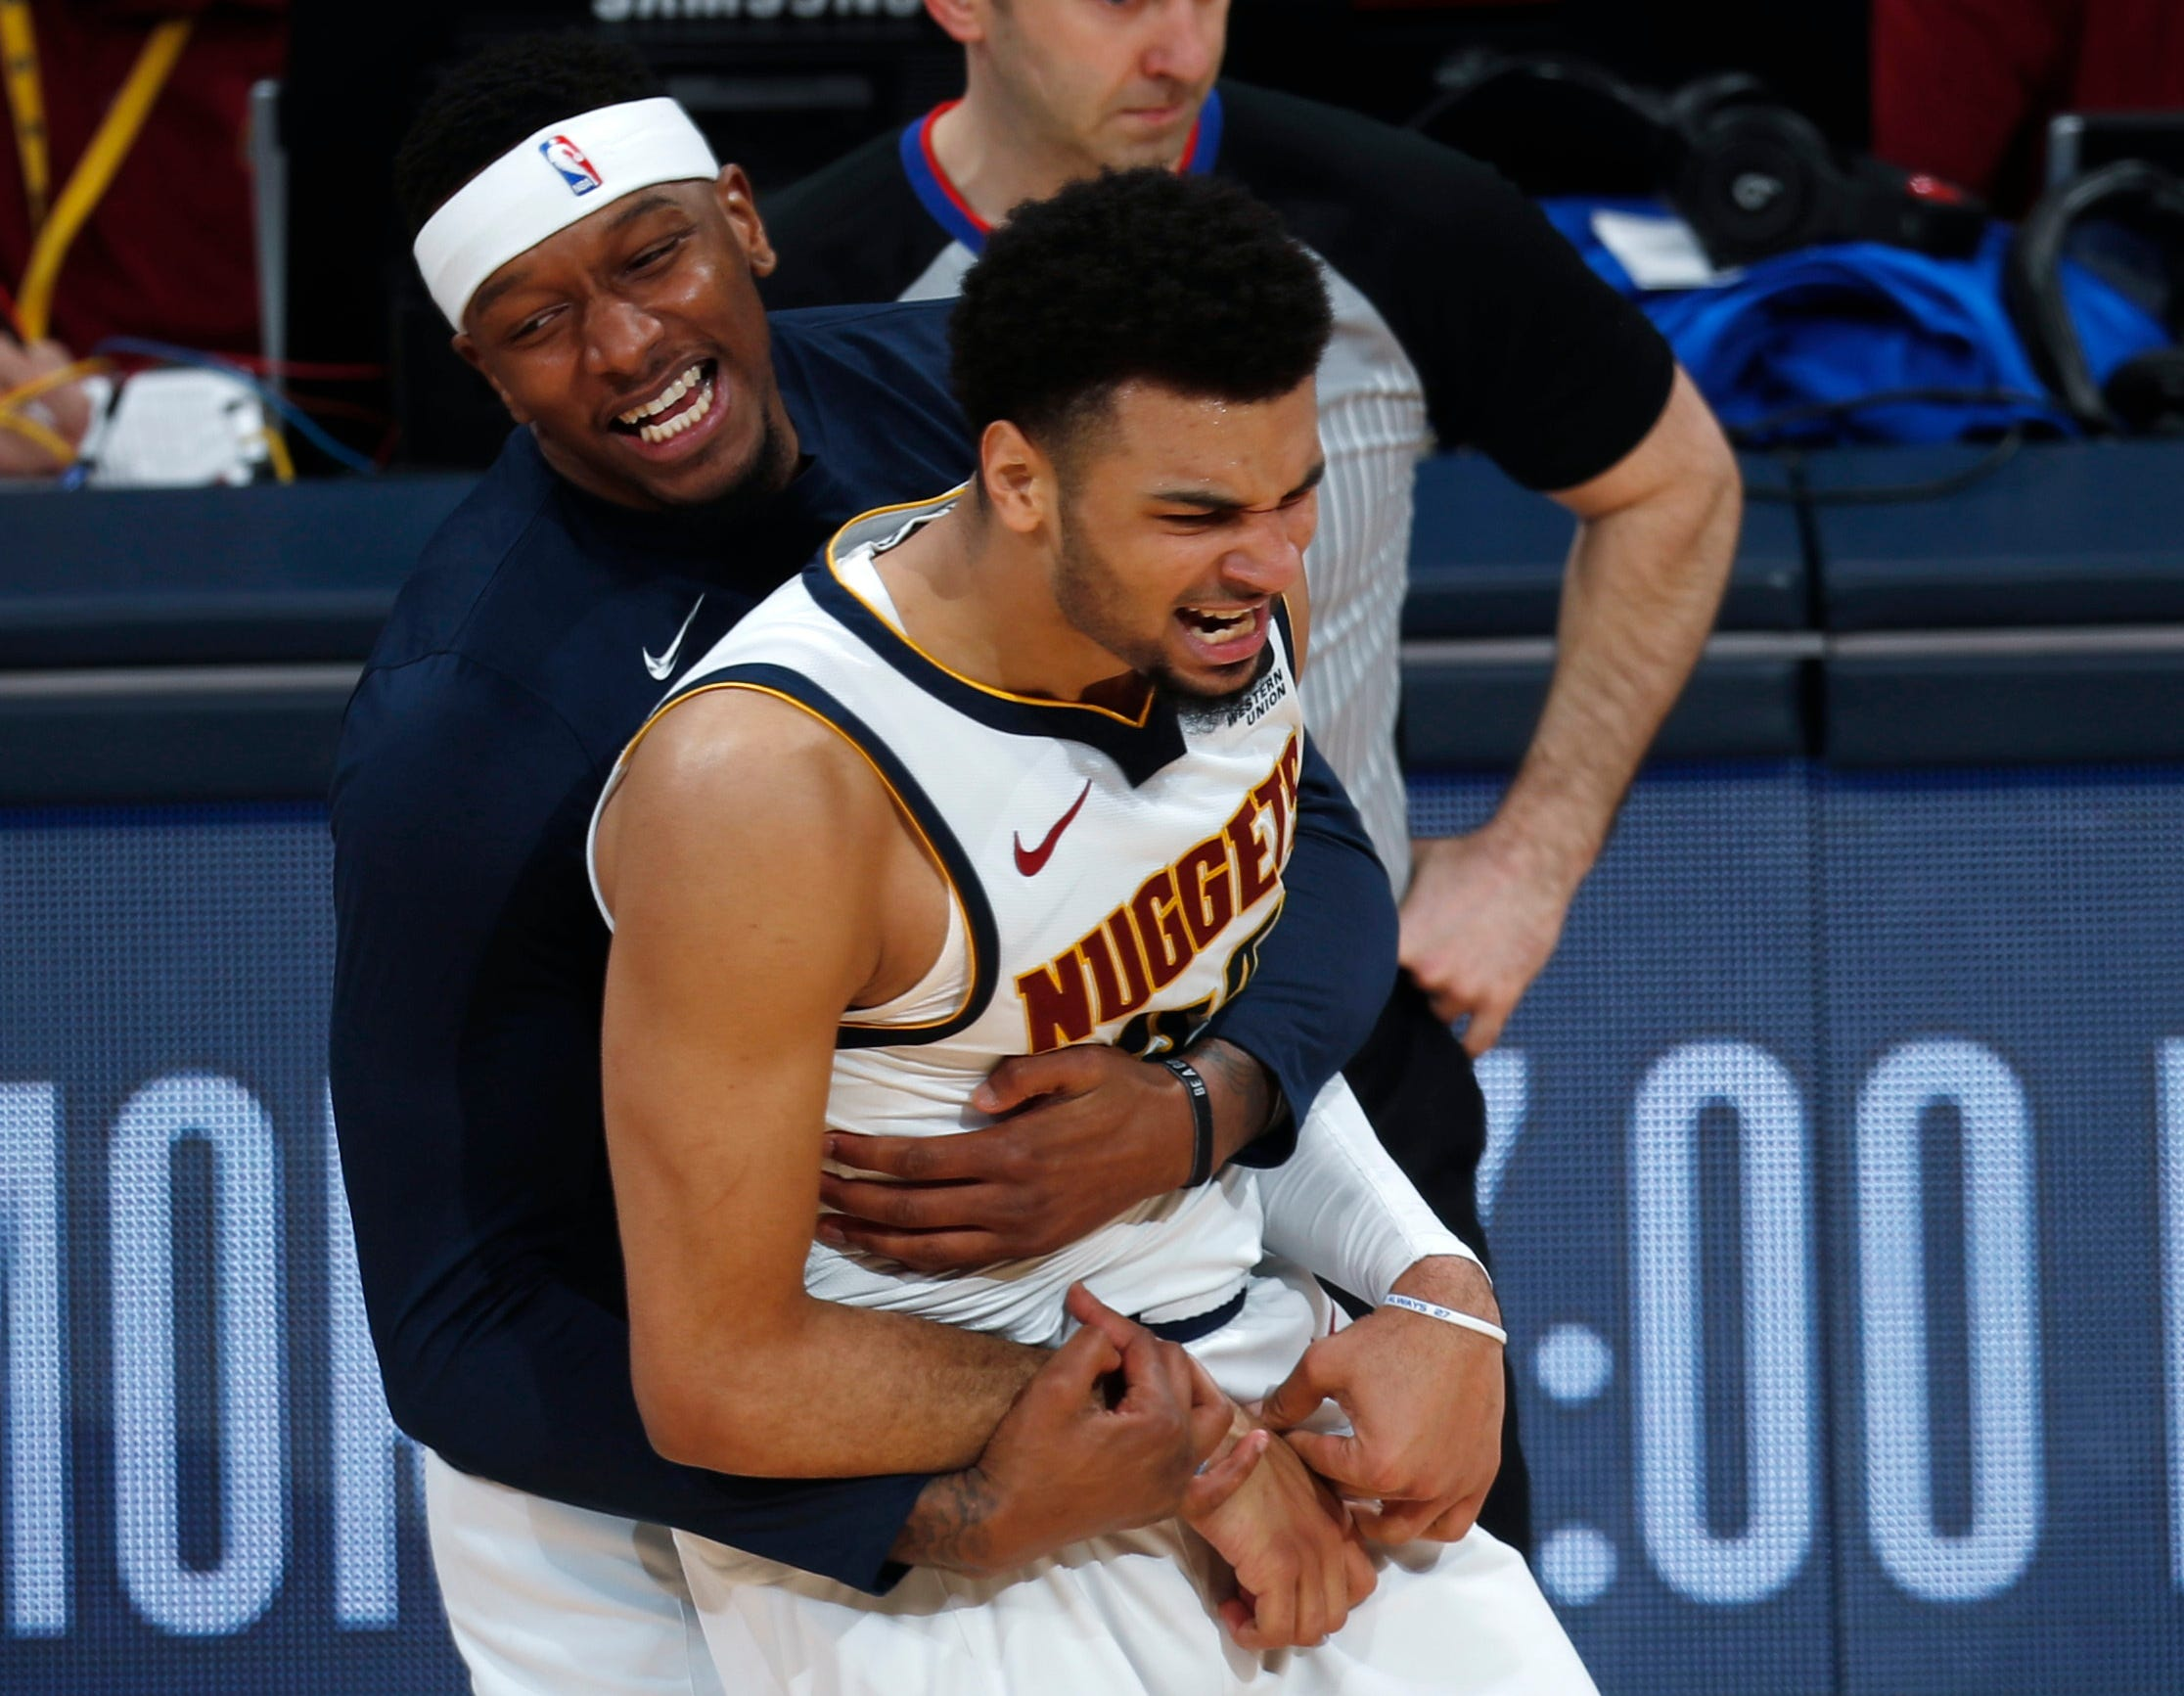 April 16: Nuggets forward Torrey Craig hugs Jamal Murray after he hit a shot late in Denver's Game 2 win over the Spurs.